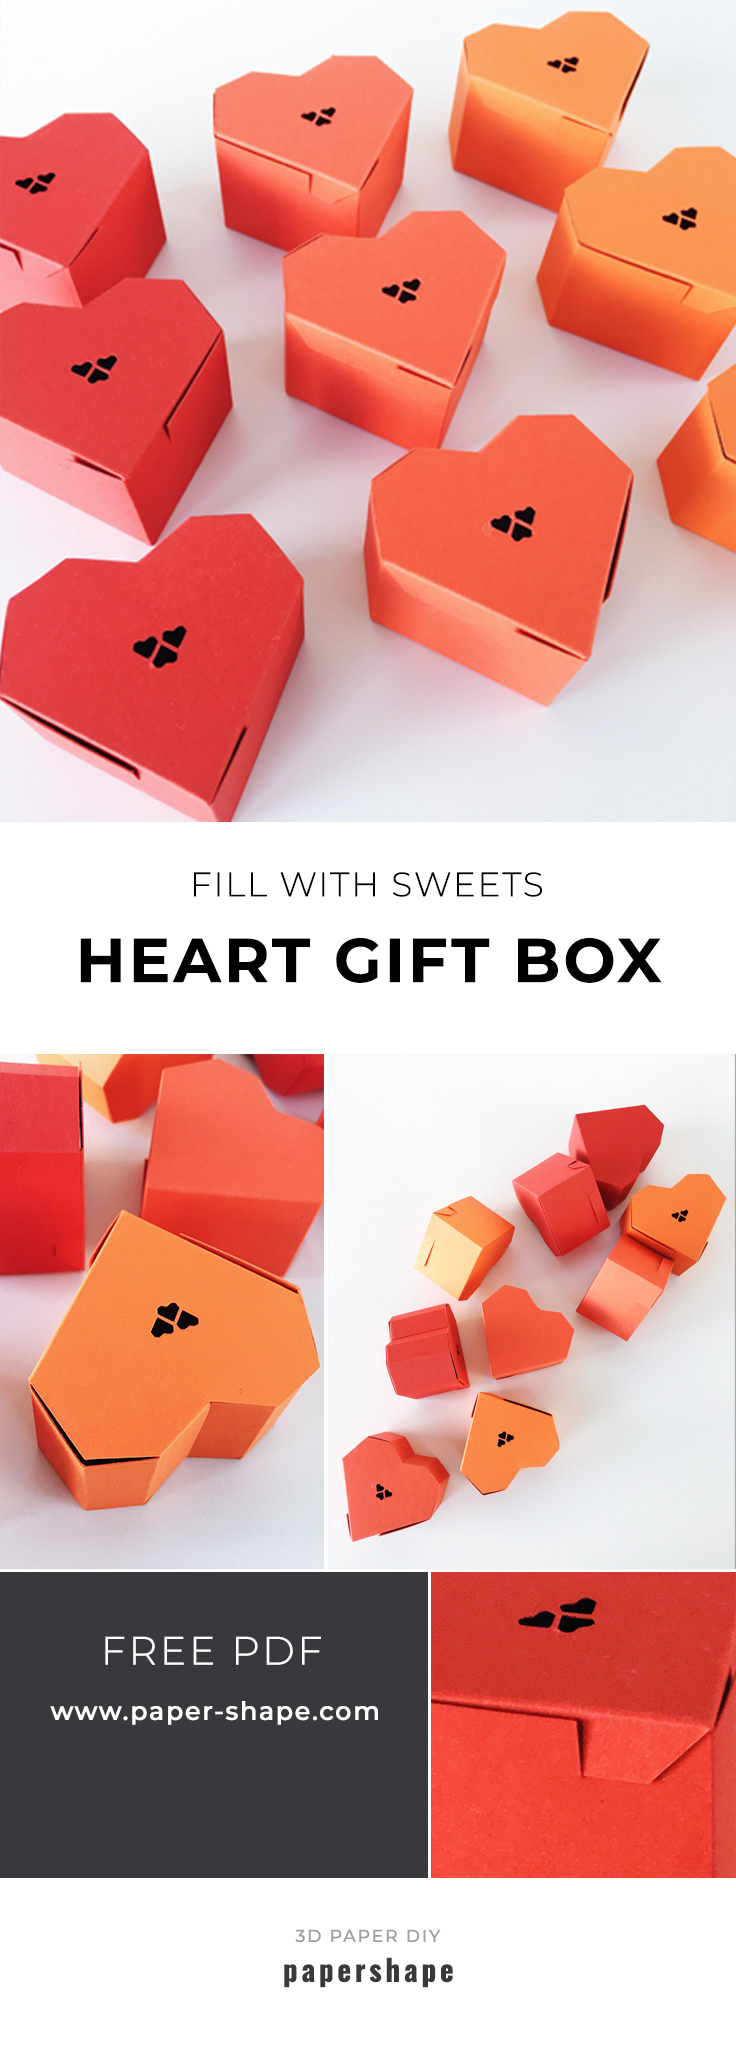 diy paper craft tutorial: heart gift box with free printable from #papershape